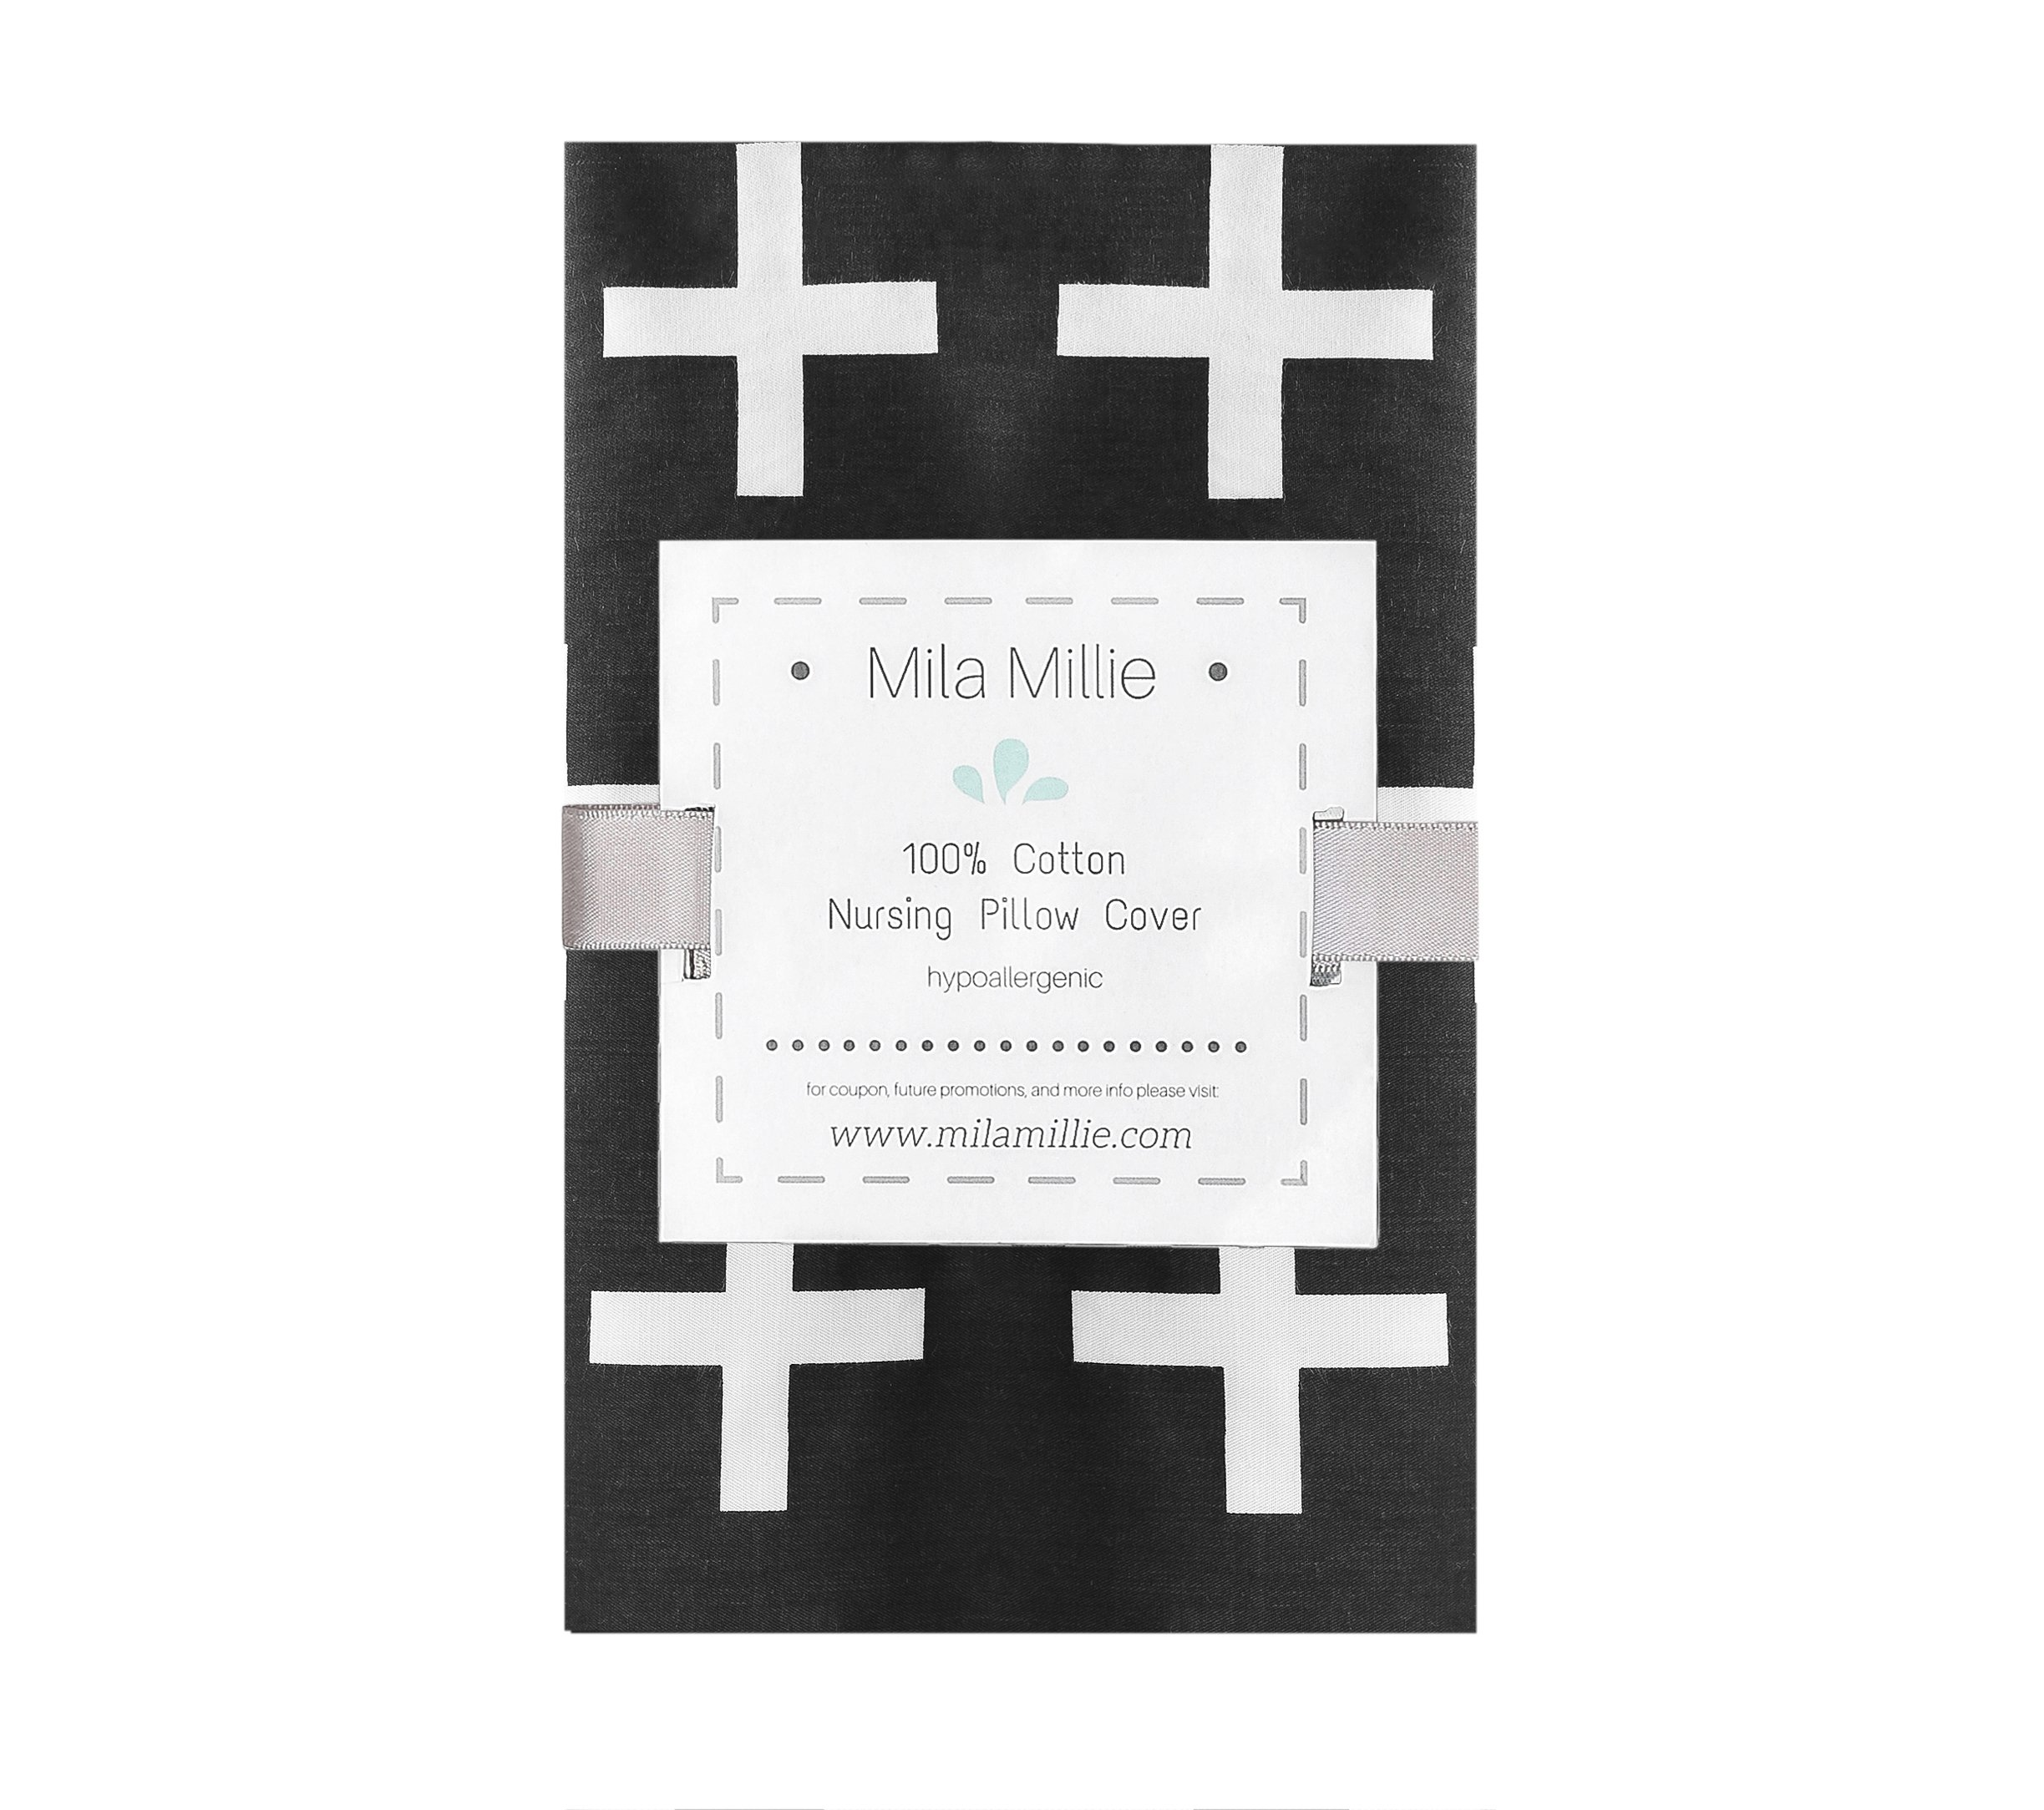 Premium Quality Nursing Pillow Cover by Mila Millie - Nordic Swiss White Cross Unisex Design Slipcover - 100% Cotton Hypoallergenic - Perfect for Breastfeeding Mothers - Baby Shower Gift by Mila Millie (Image #5)